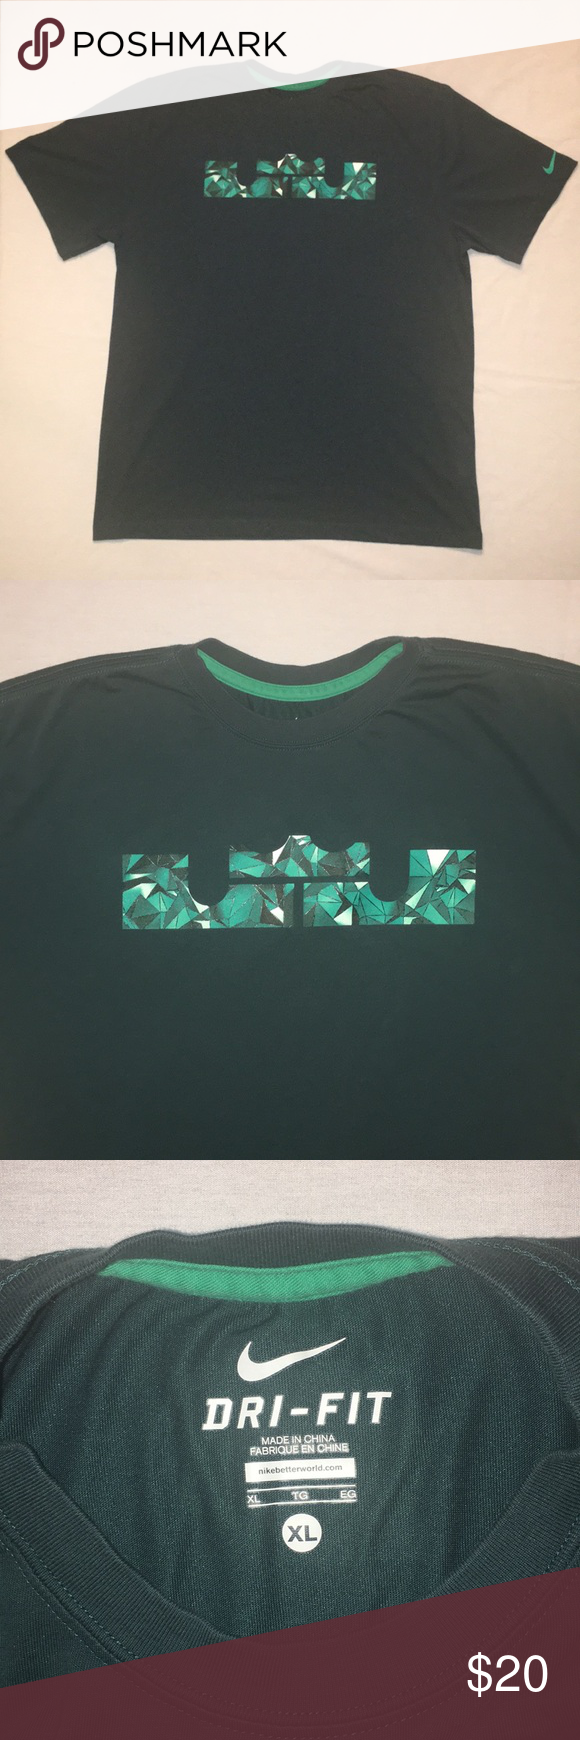 Nike X Lebron James Forest Green Graphic Tee Great Quality Shirt Nike Logo On Left Sleeve Forest Green Shirt With Mint Green L Graphic Tees Tees Lebron James [ 1740 x 580 Pixel ]